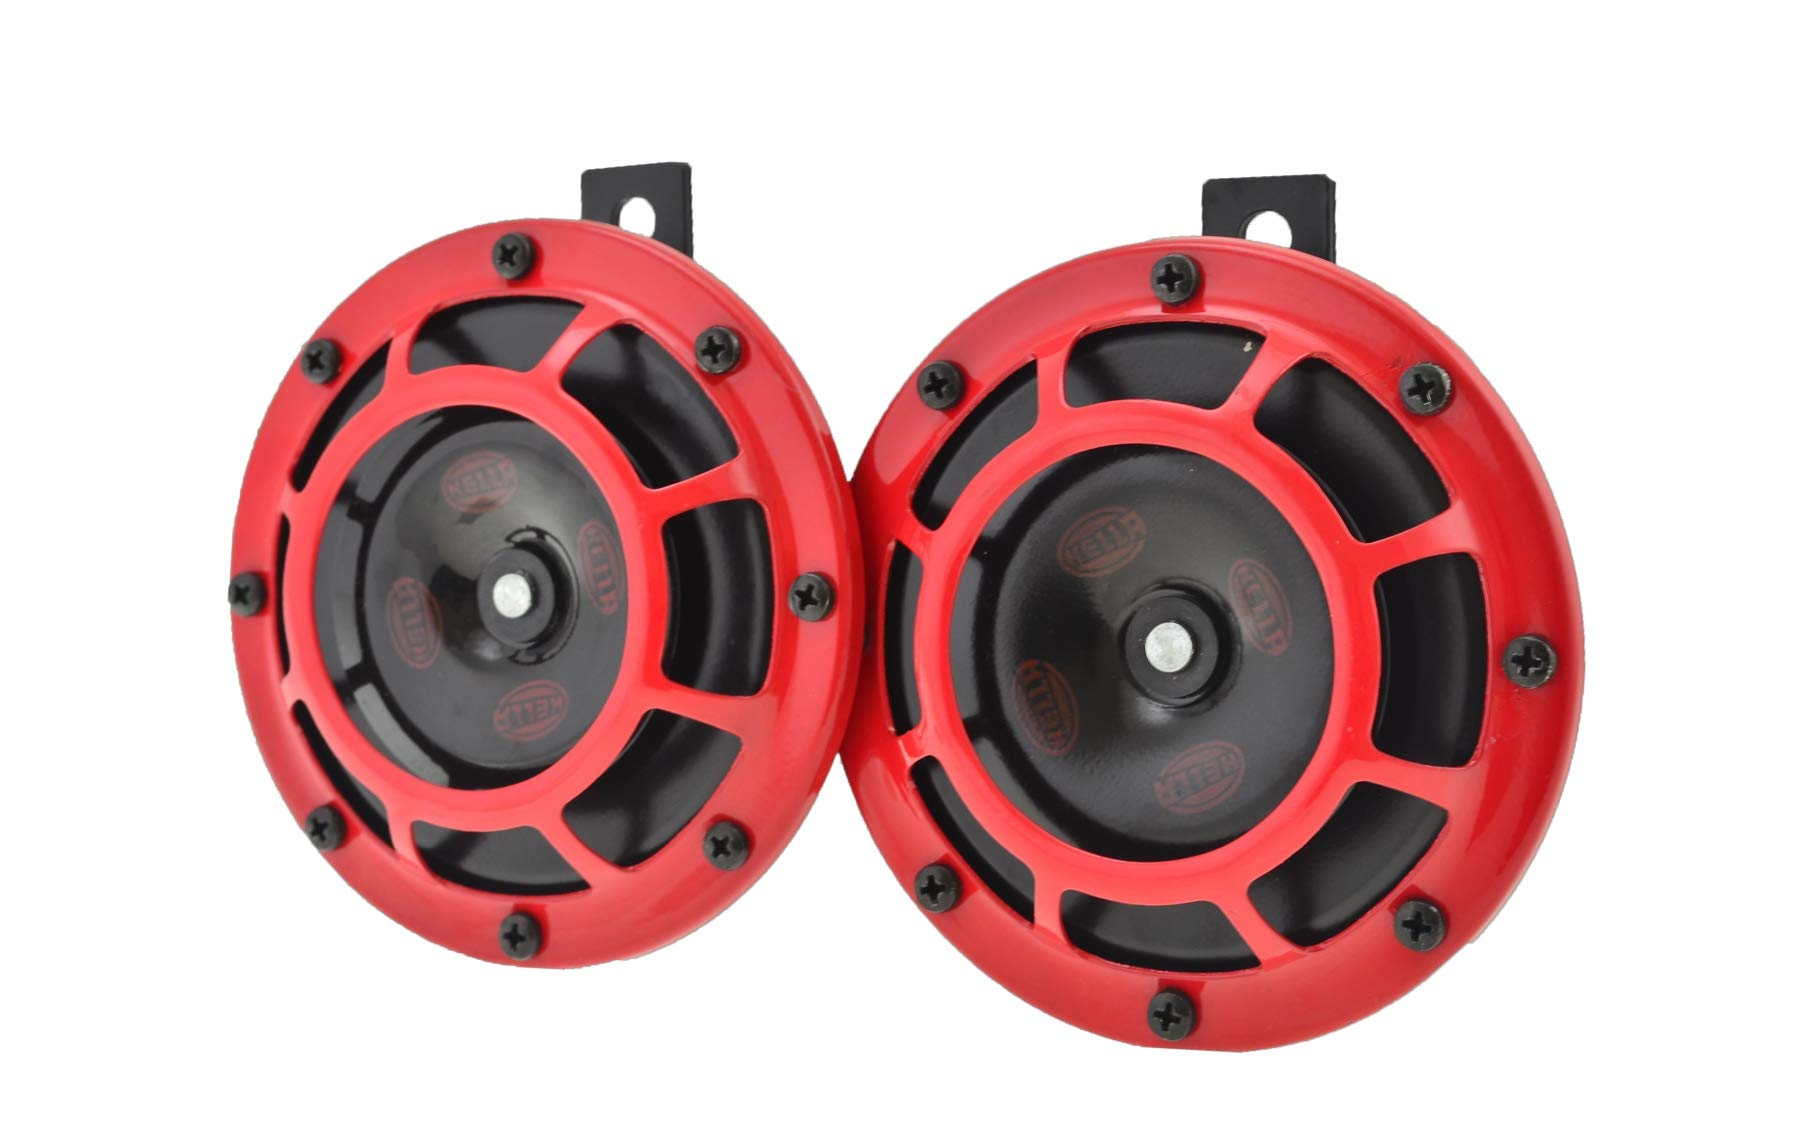 HELLA 003399801 Supertone 12V High Tone/Low Tone Twin Horn Kit with Red Protective Grill, 2 Horns